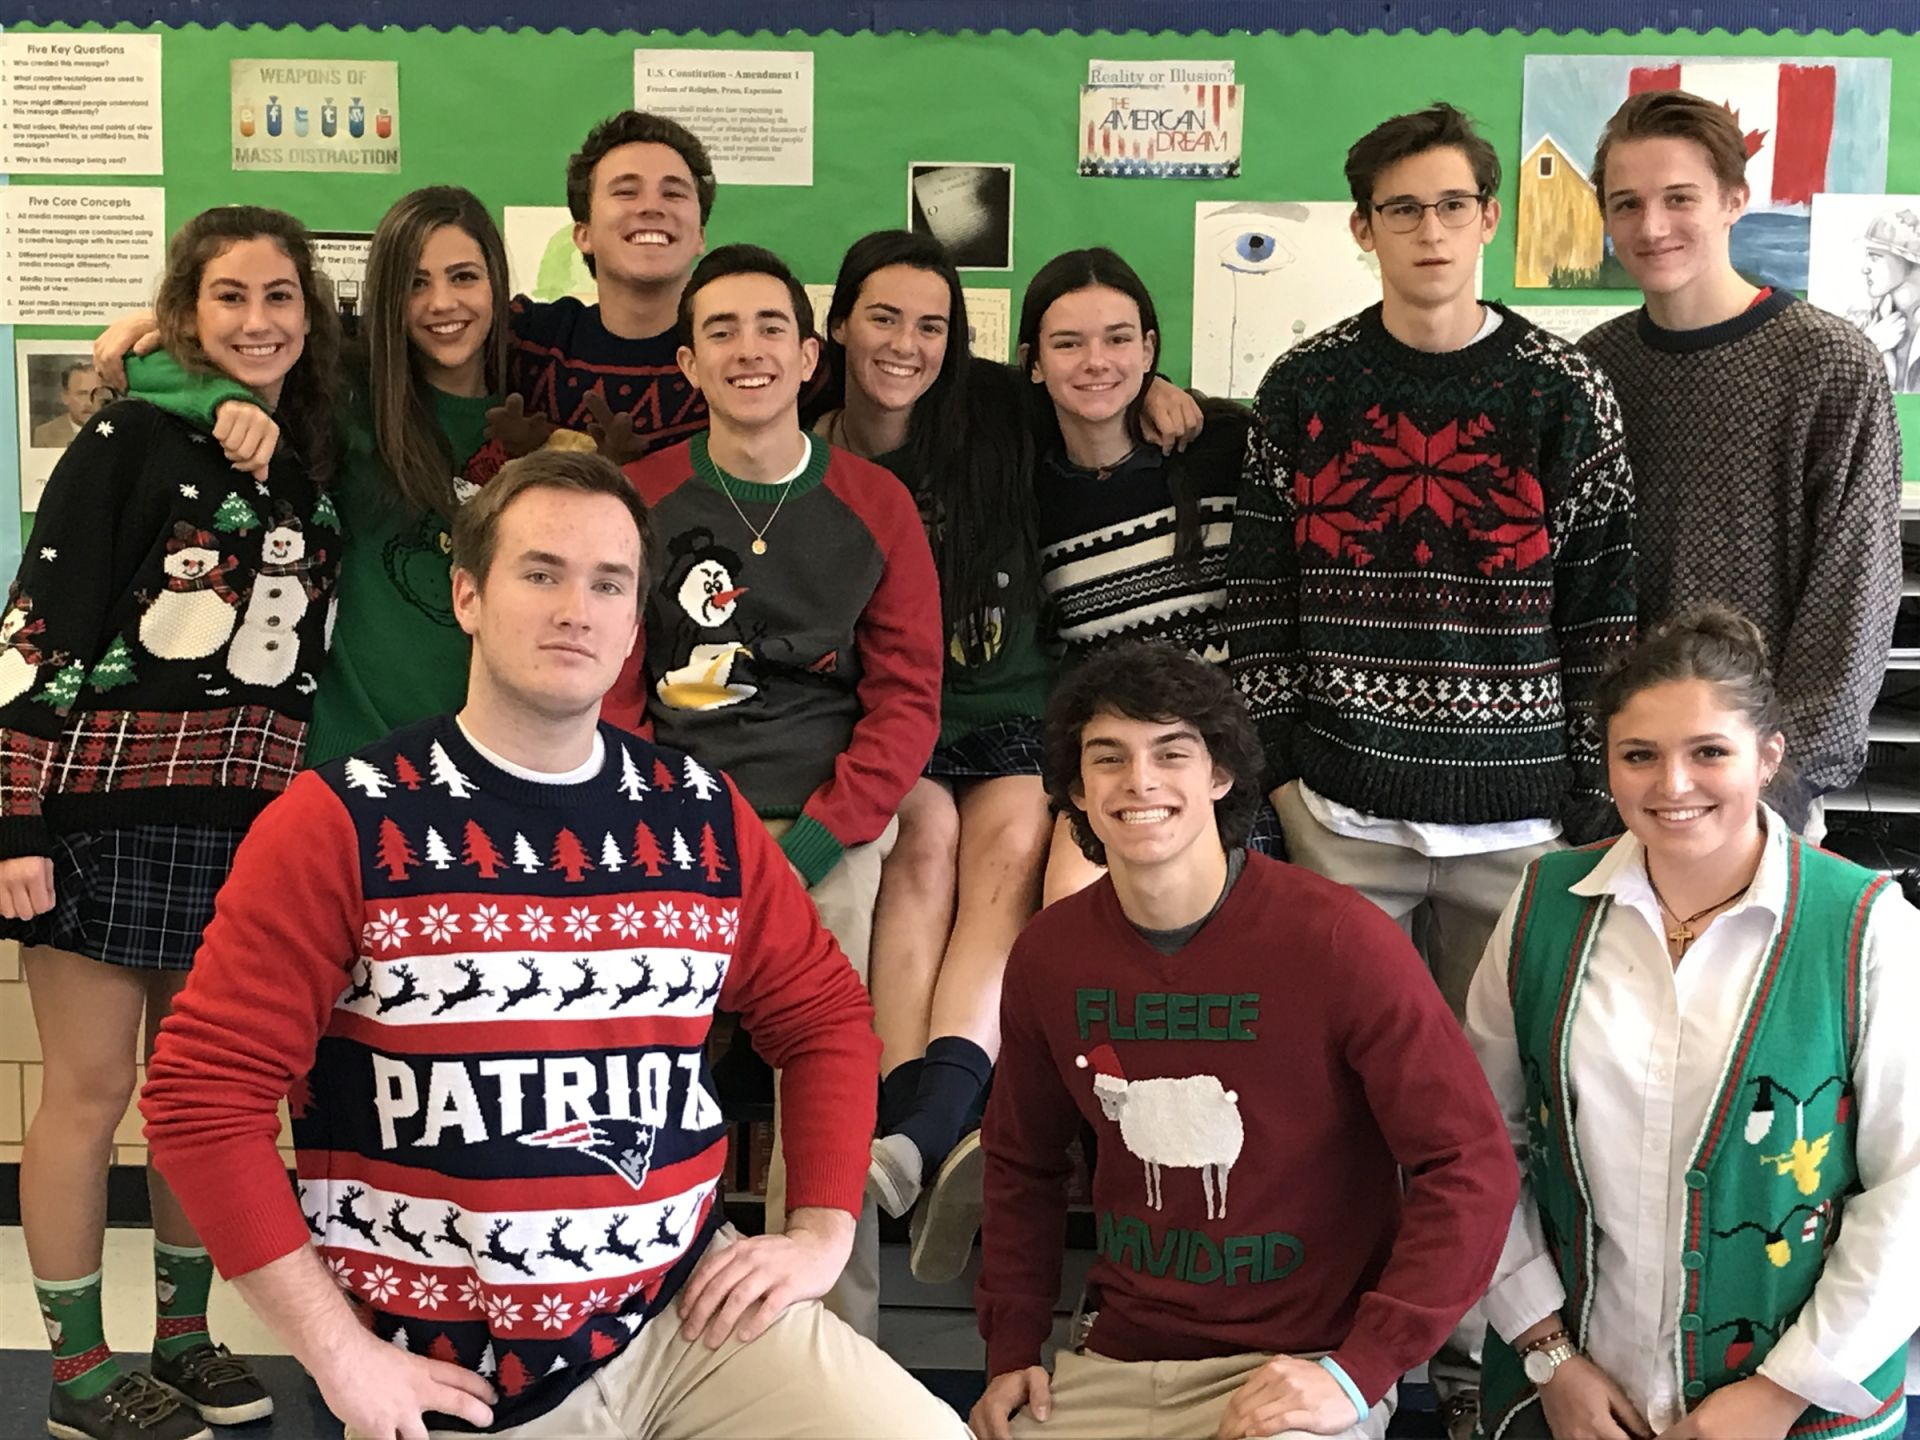 Mass Media and Communications class has THE UGLIEST Ugly Sweaters!